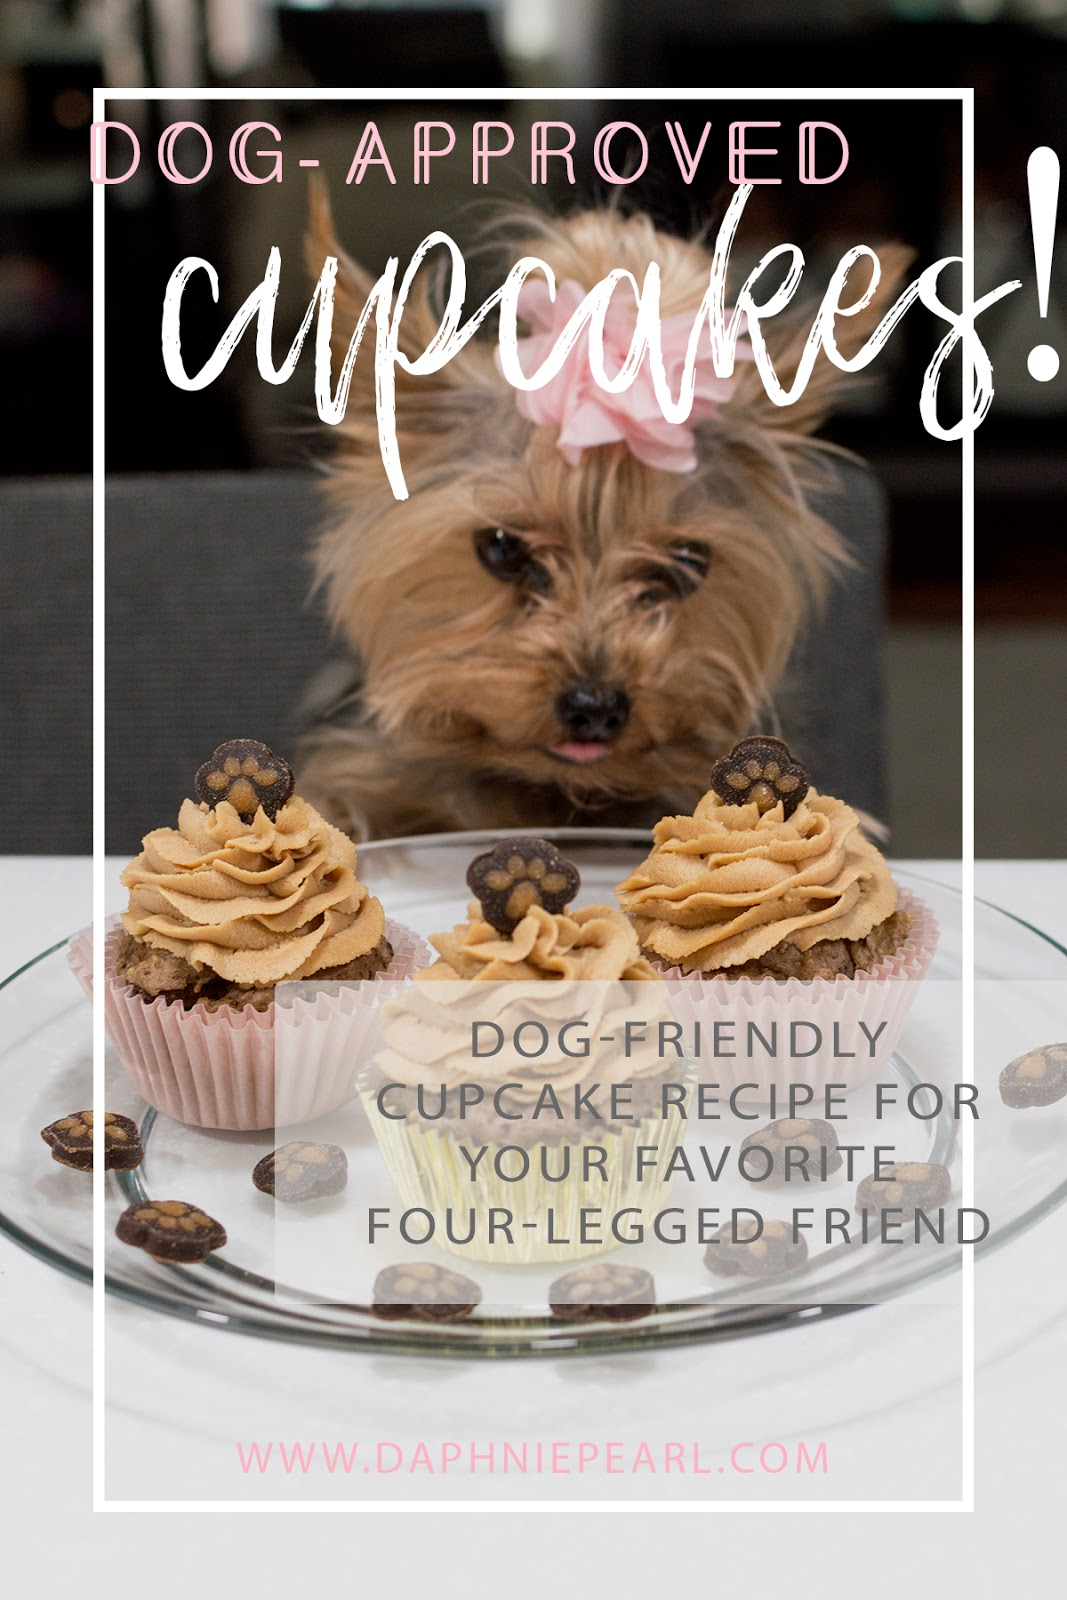 Dog-Approved Cupcakes for Cupcake's Birthday! - Daphnie Pearl